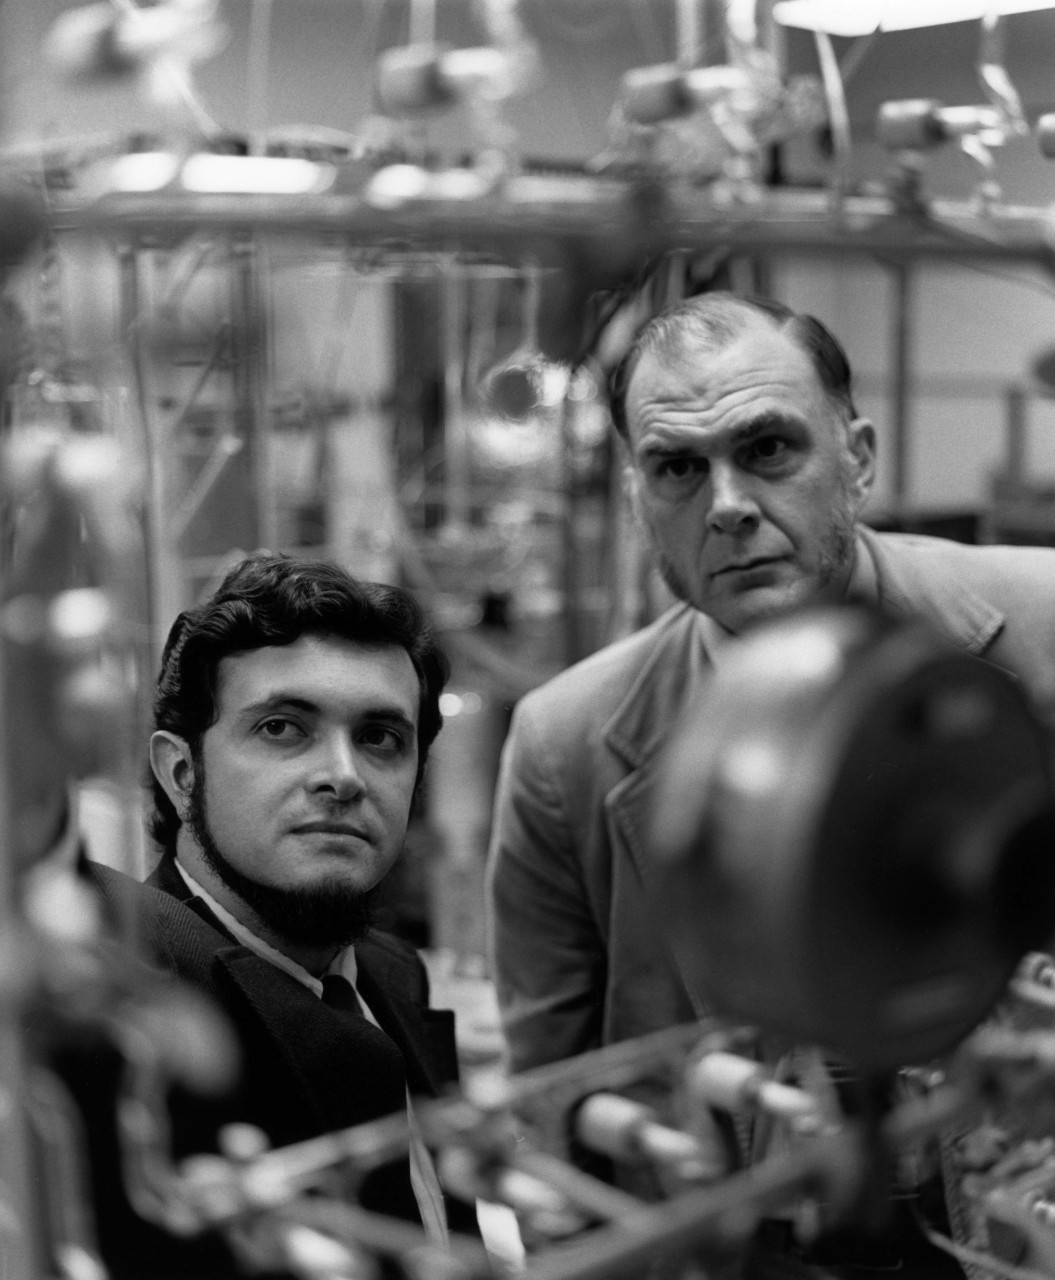 F. Sherwood Rowland (right) and Mario J. Molina in their University of California, Irvine lab